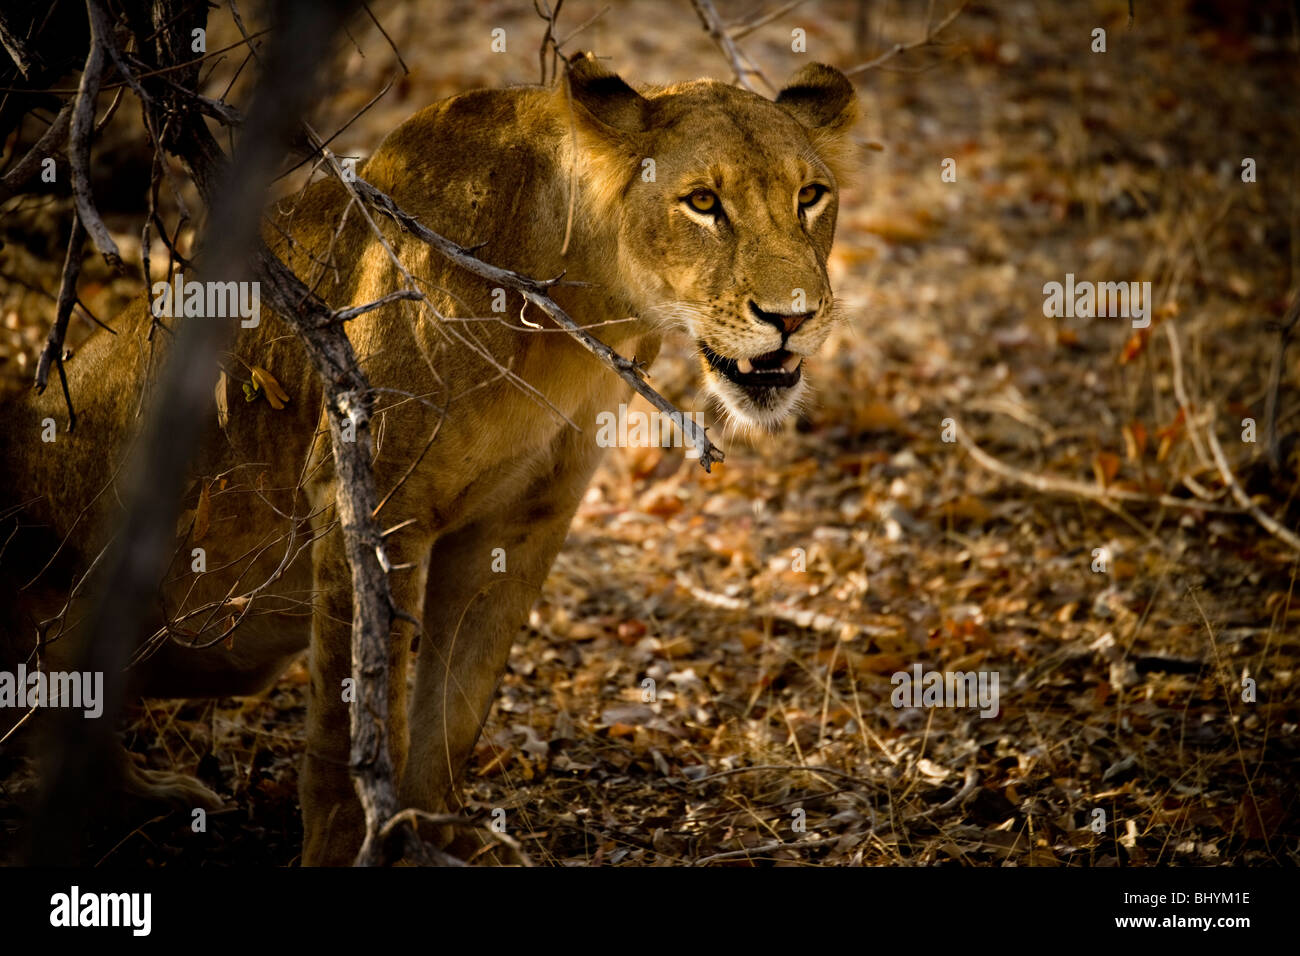 Lioness, Selous Game Reserve, Tanzania, East Africa - Stock Image